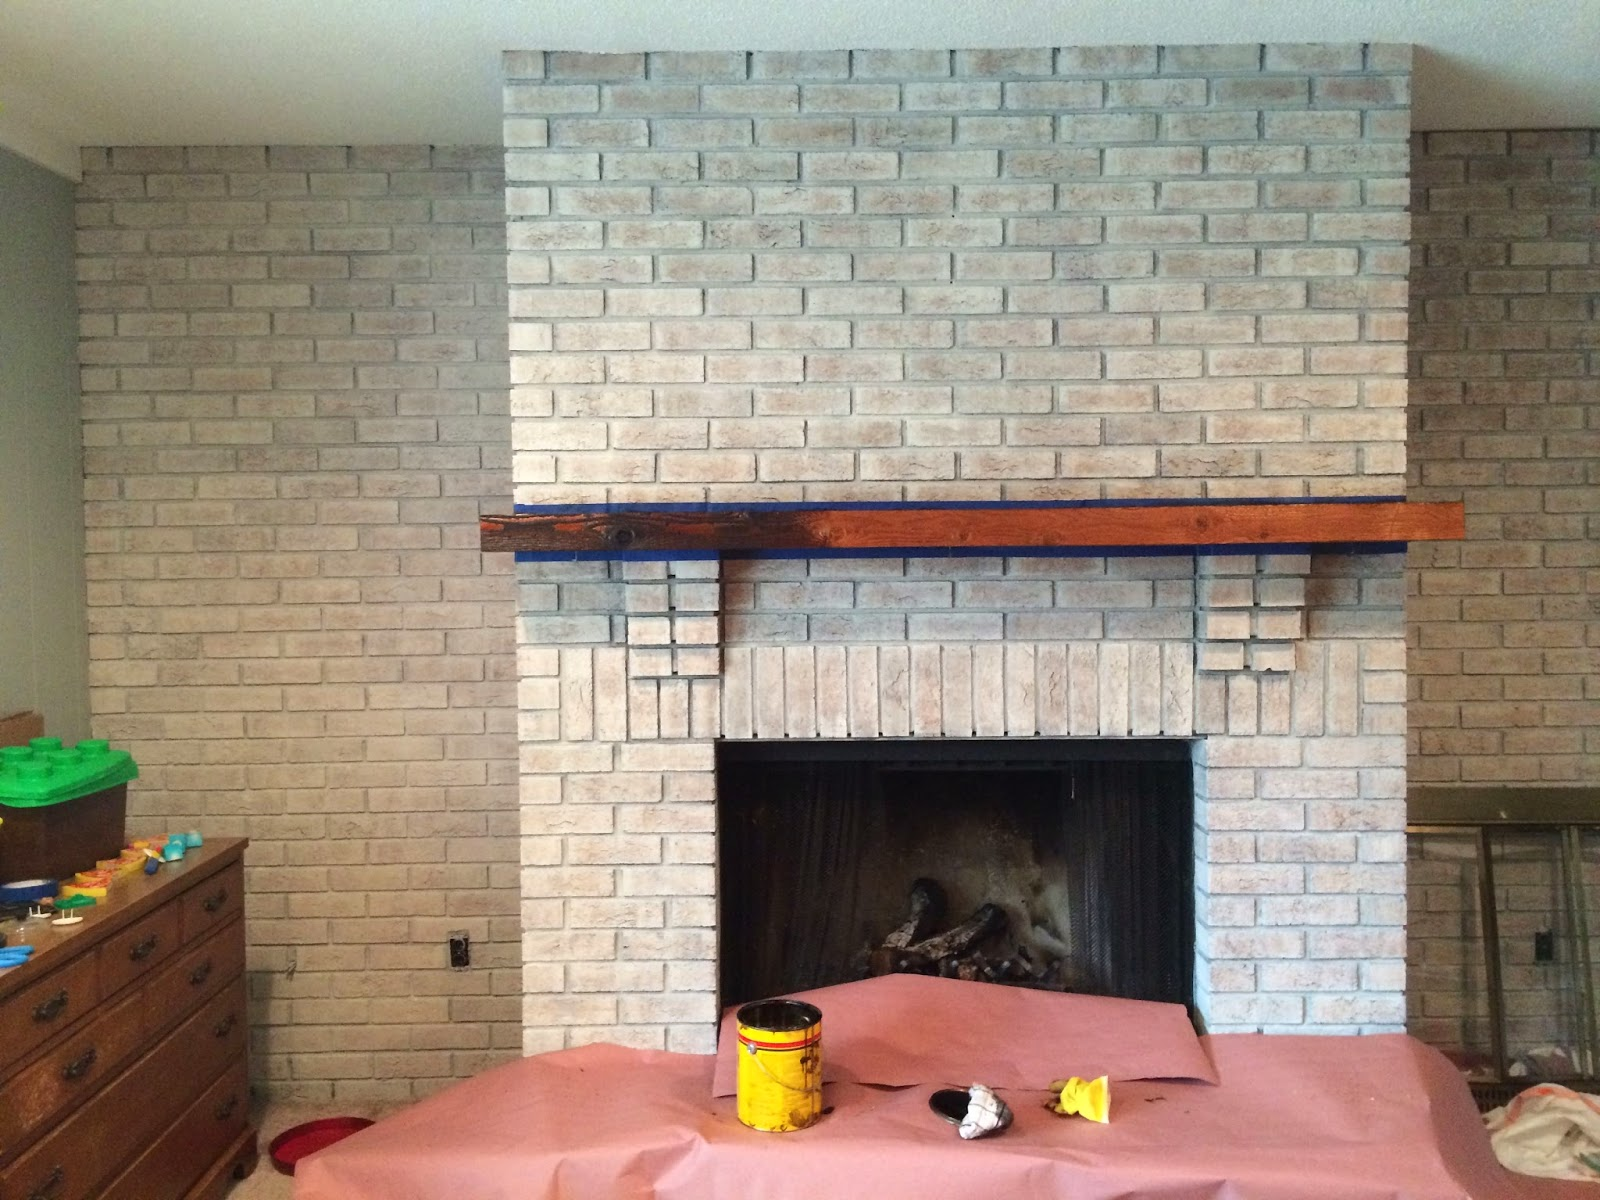 Walking with dancers the family room s fireplace update - I Wasn T Sure About It All Until It Was Done I Was Still Super Nervous All Said And Done I Think It Was An Awesome Choice